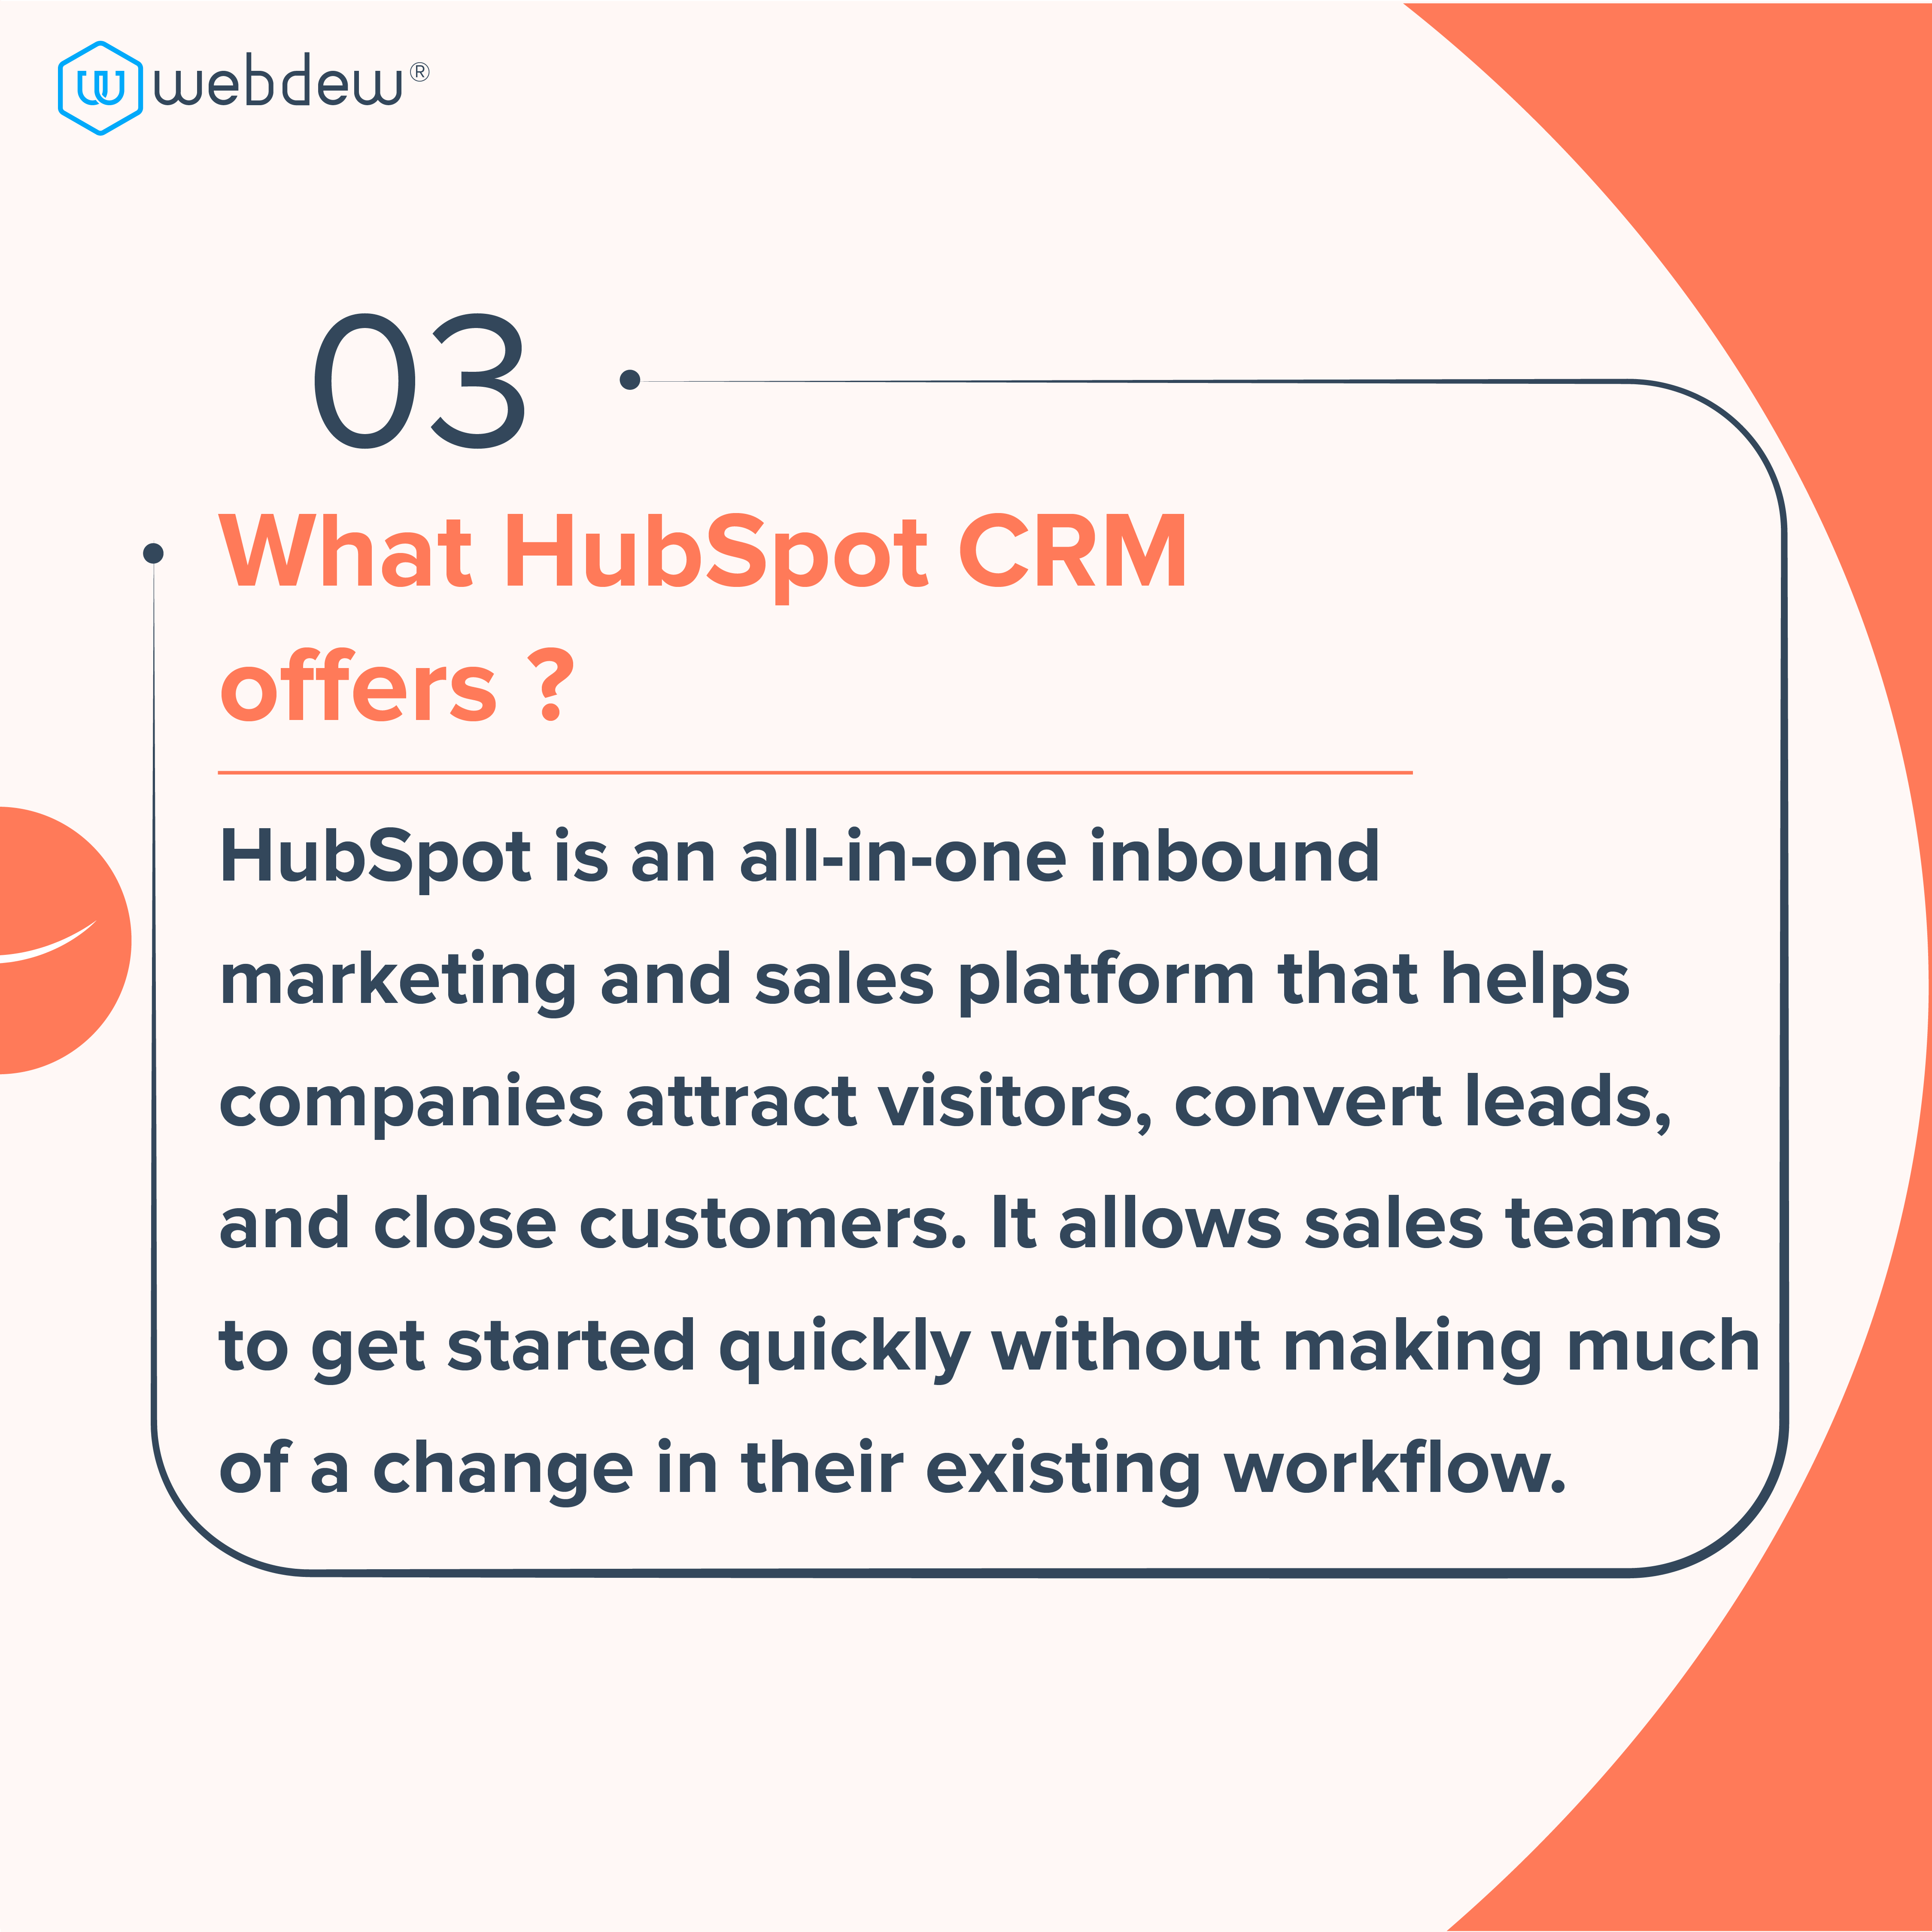 4. what is HubSpot CRM offers